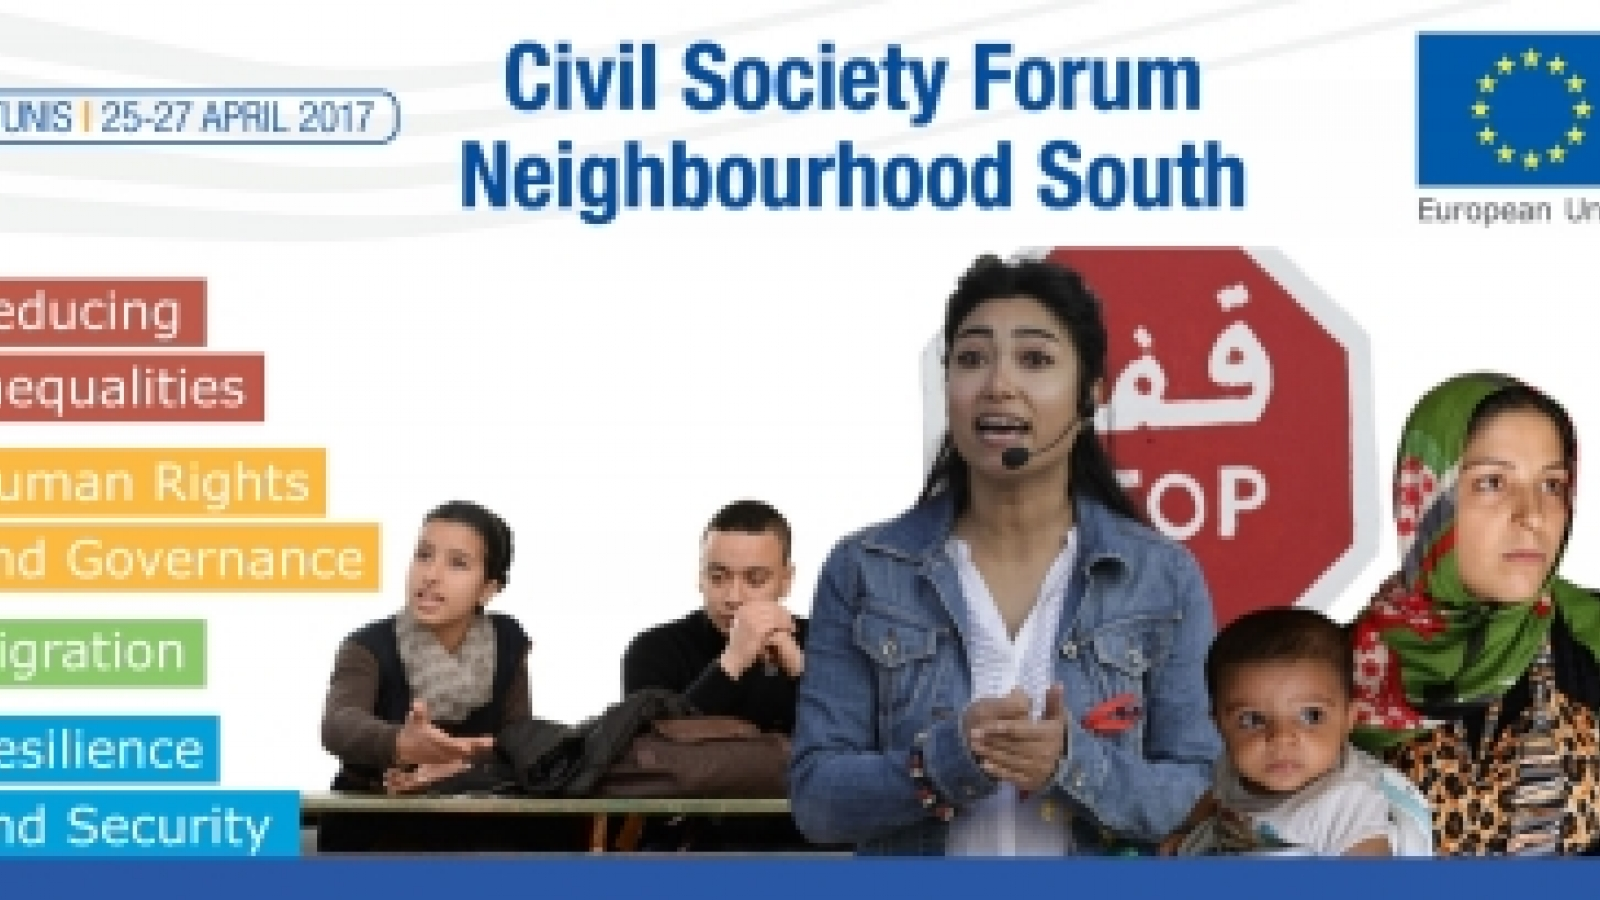 Civil Society Forum Neighbourhood South 2017